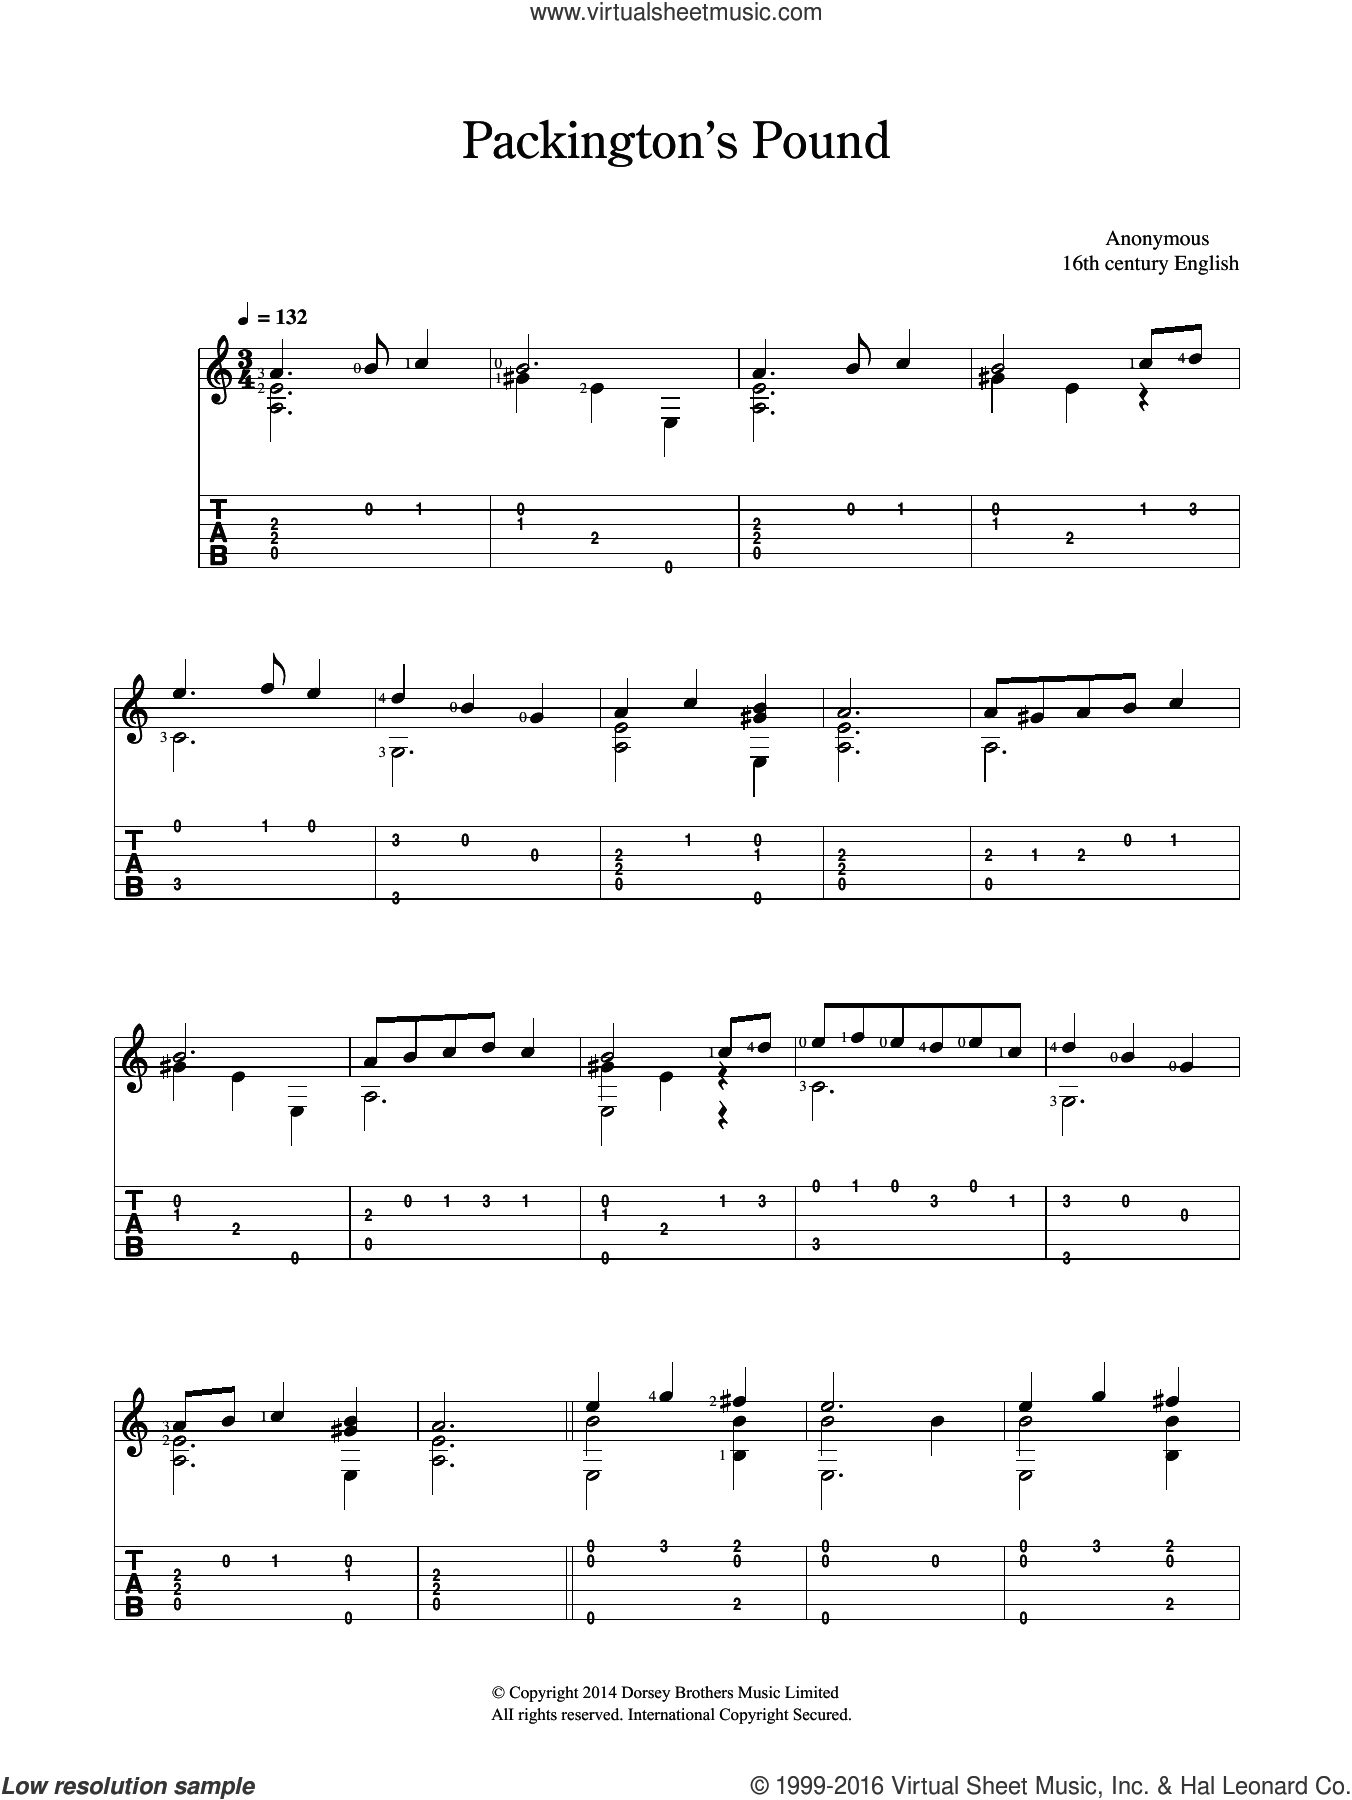 Packington's Pound sheet music for guitar solo (chords), easy guitar (chords)